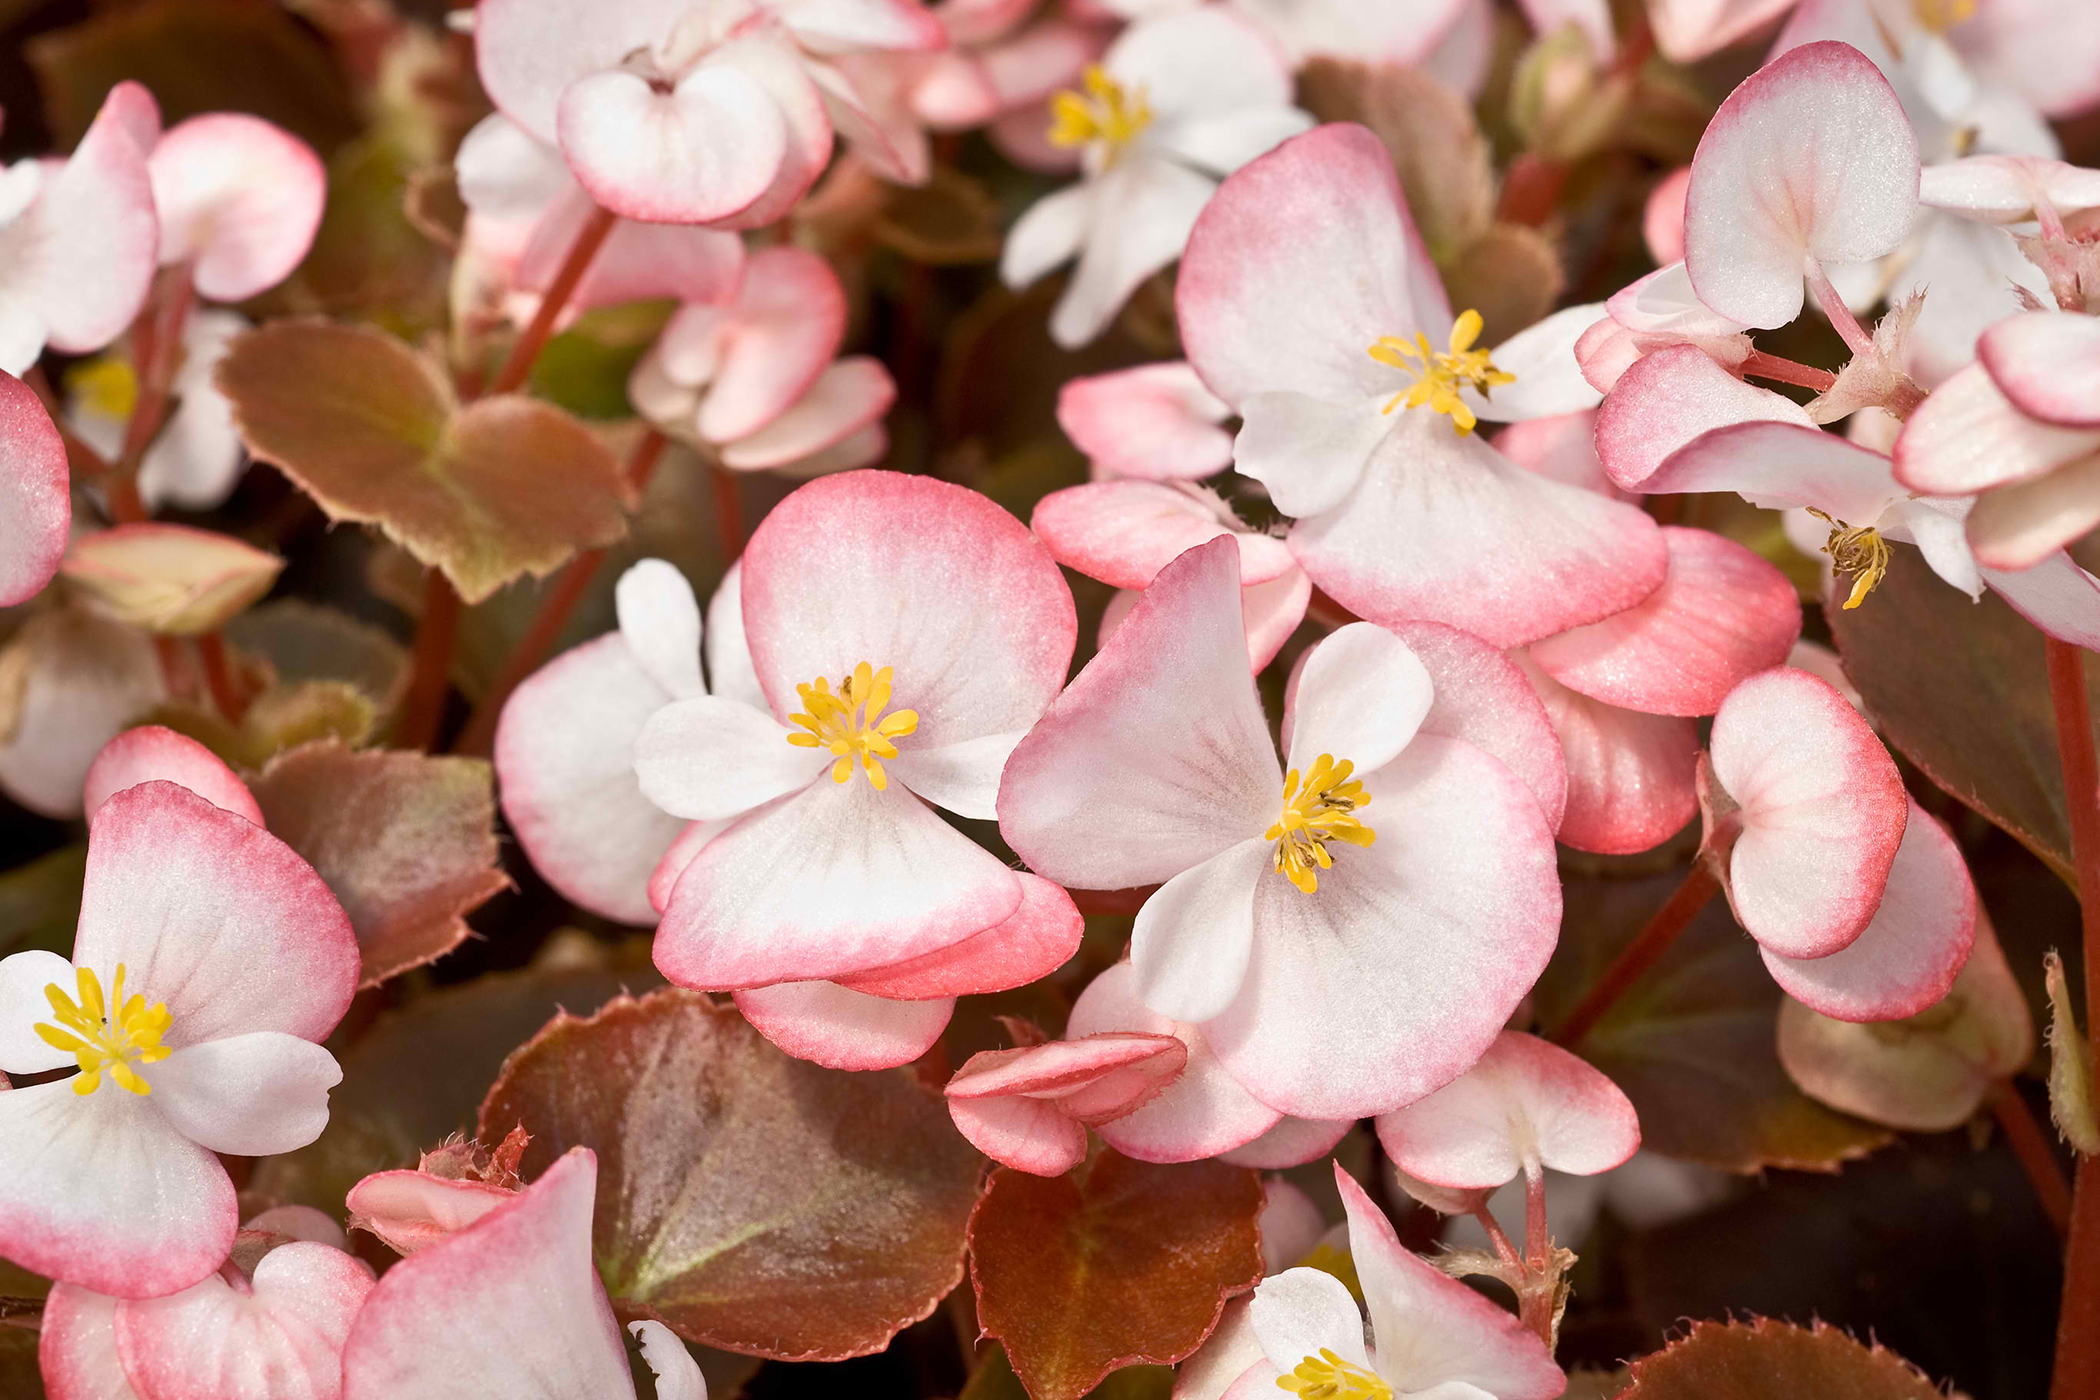 Begonia Poisoning in Cats